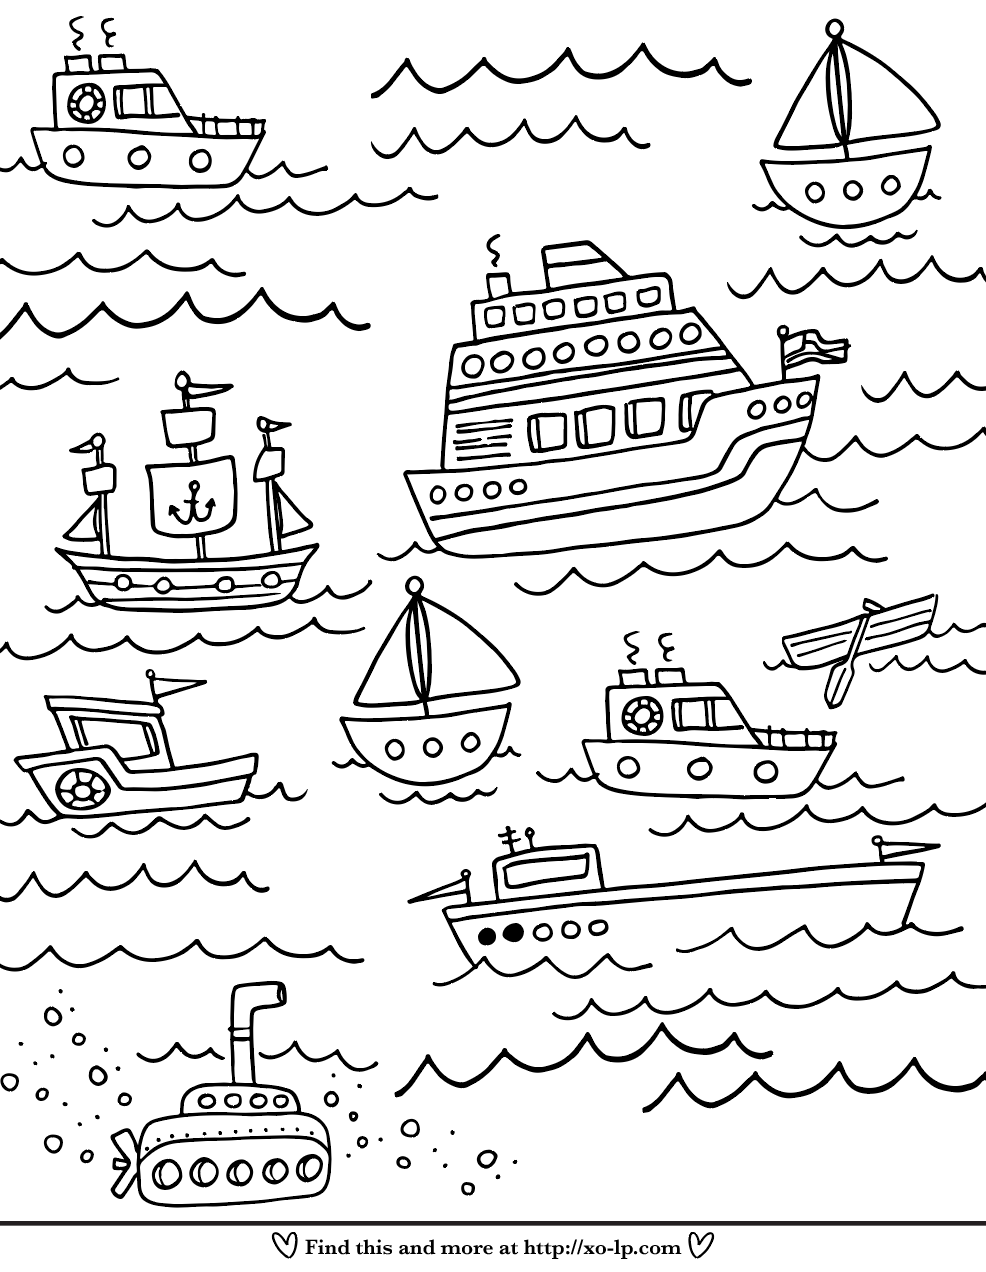 Boats Coloring Page Xo Lp Coloring Pages Kids Doodles Printable Coloring Pages [ 1272 x 986 Pixel ]